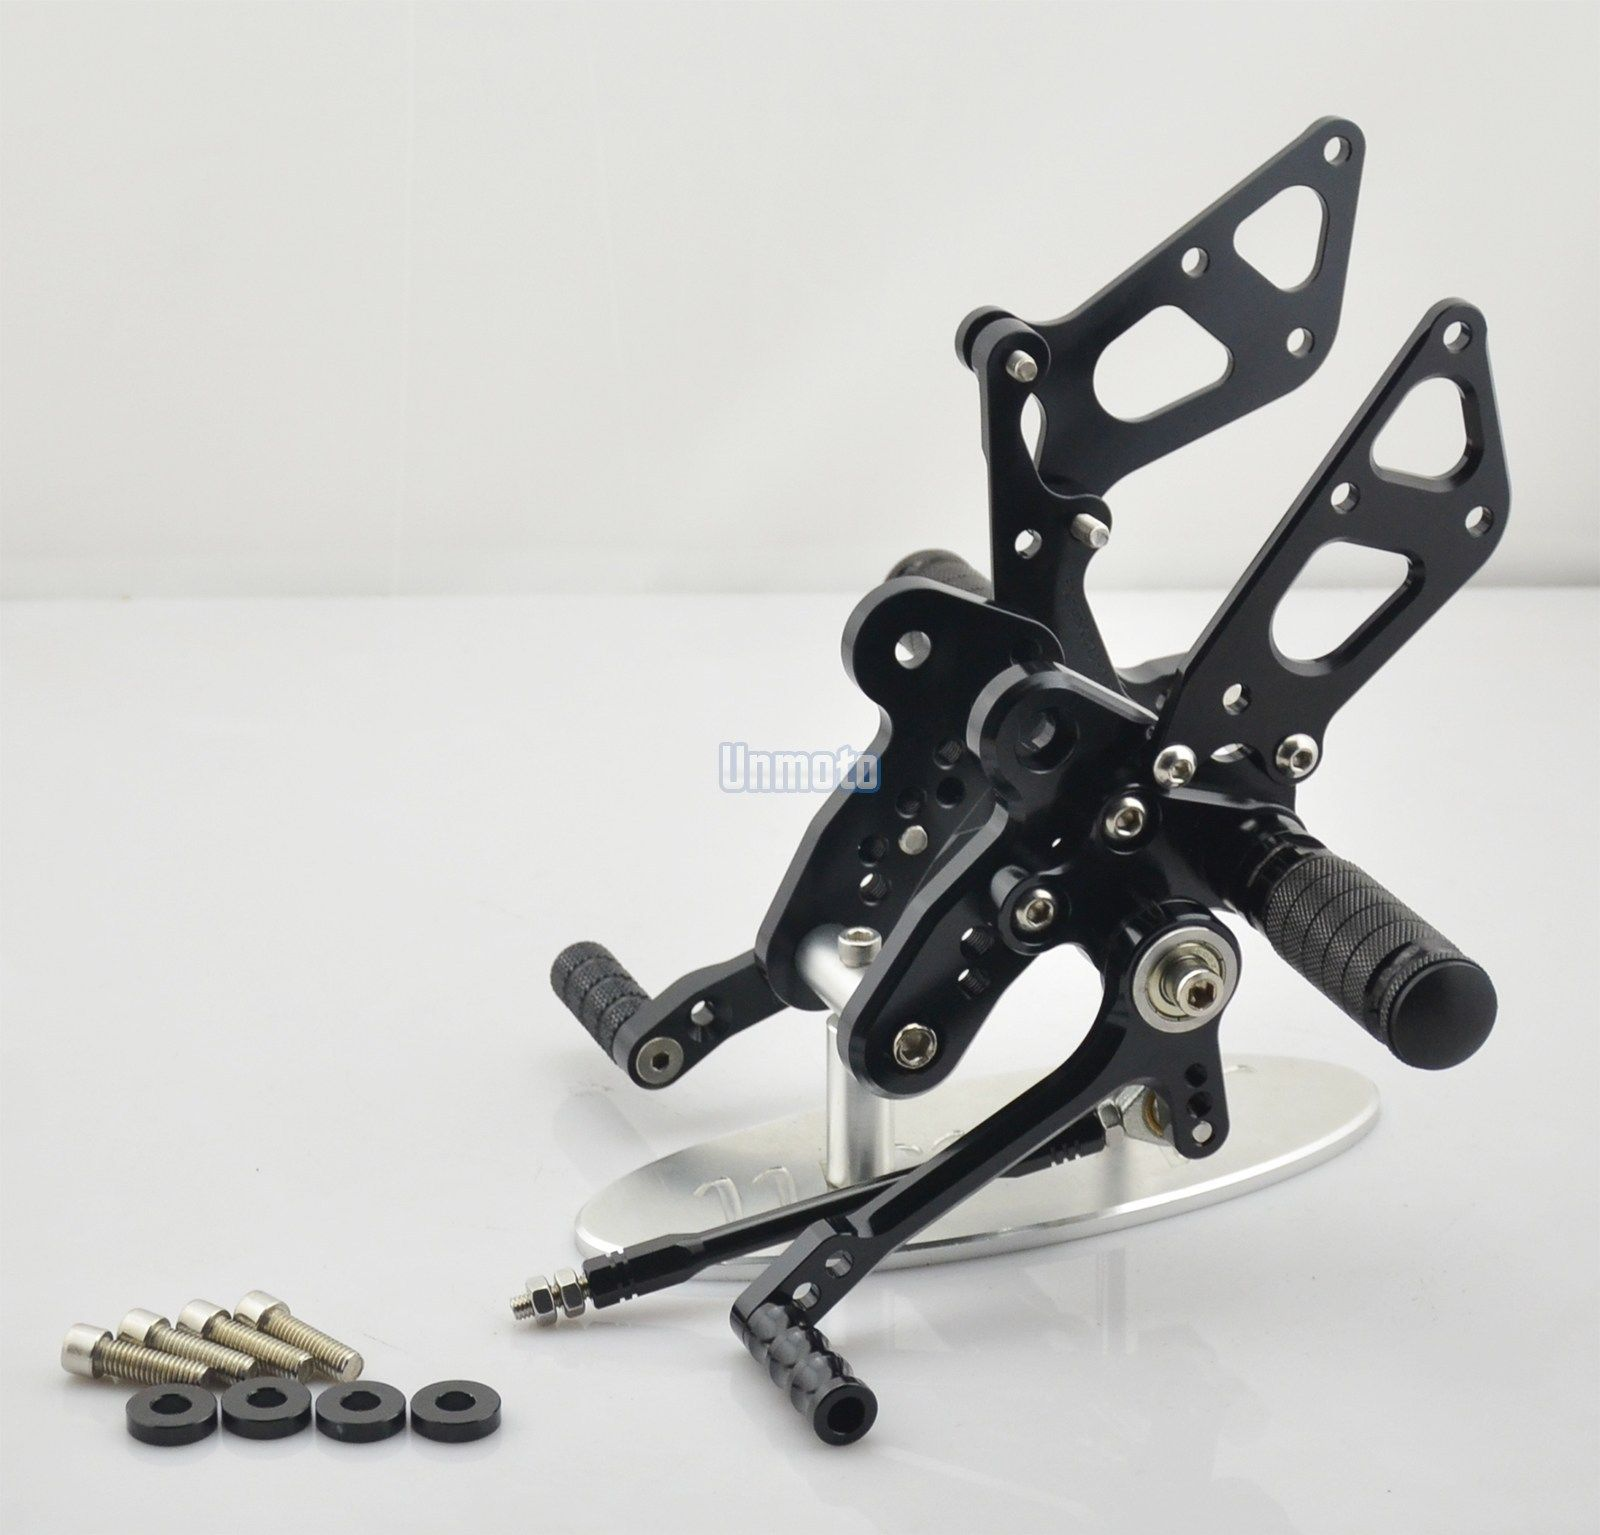 CNC Foot pegs rear set Suzuki Hayabusa 99-12 Black